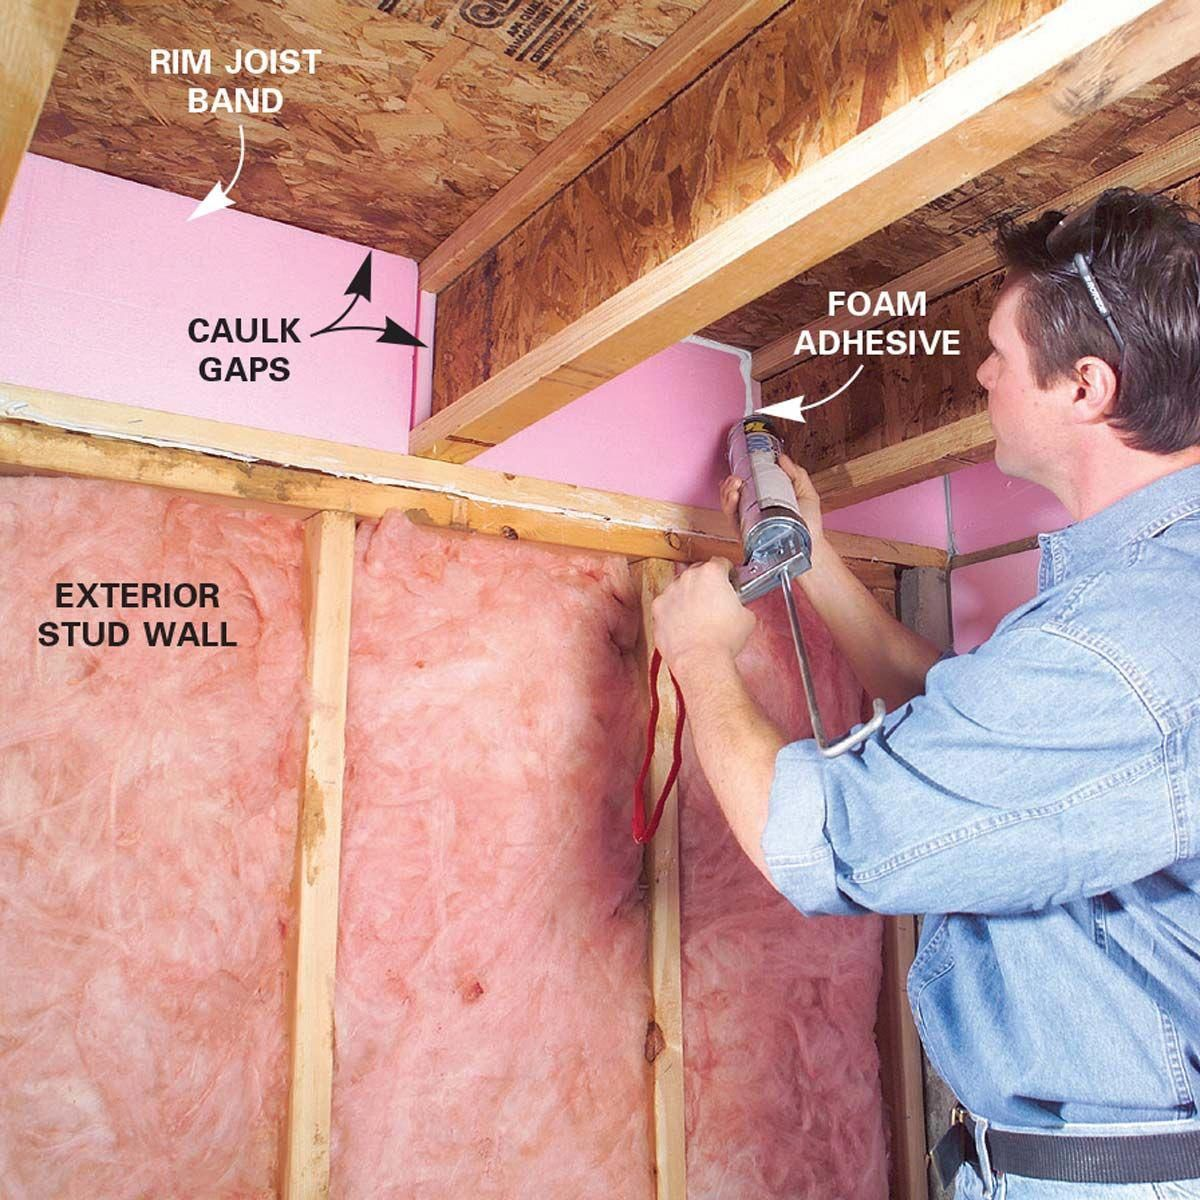 How To Finish Frame And Insulate A Basement Waterproofing Basement Framing Basement Walls Insulating Basement Walls